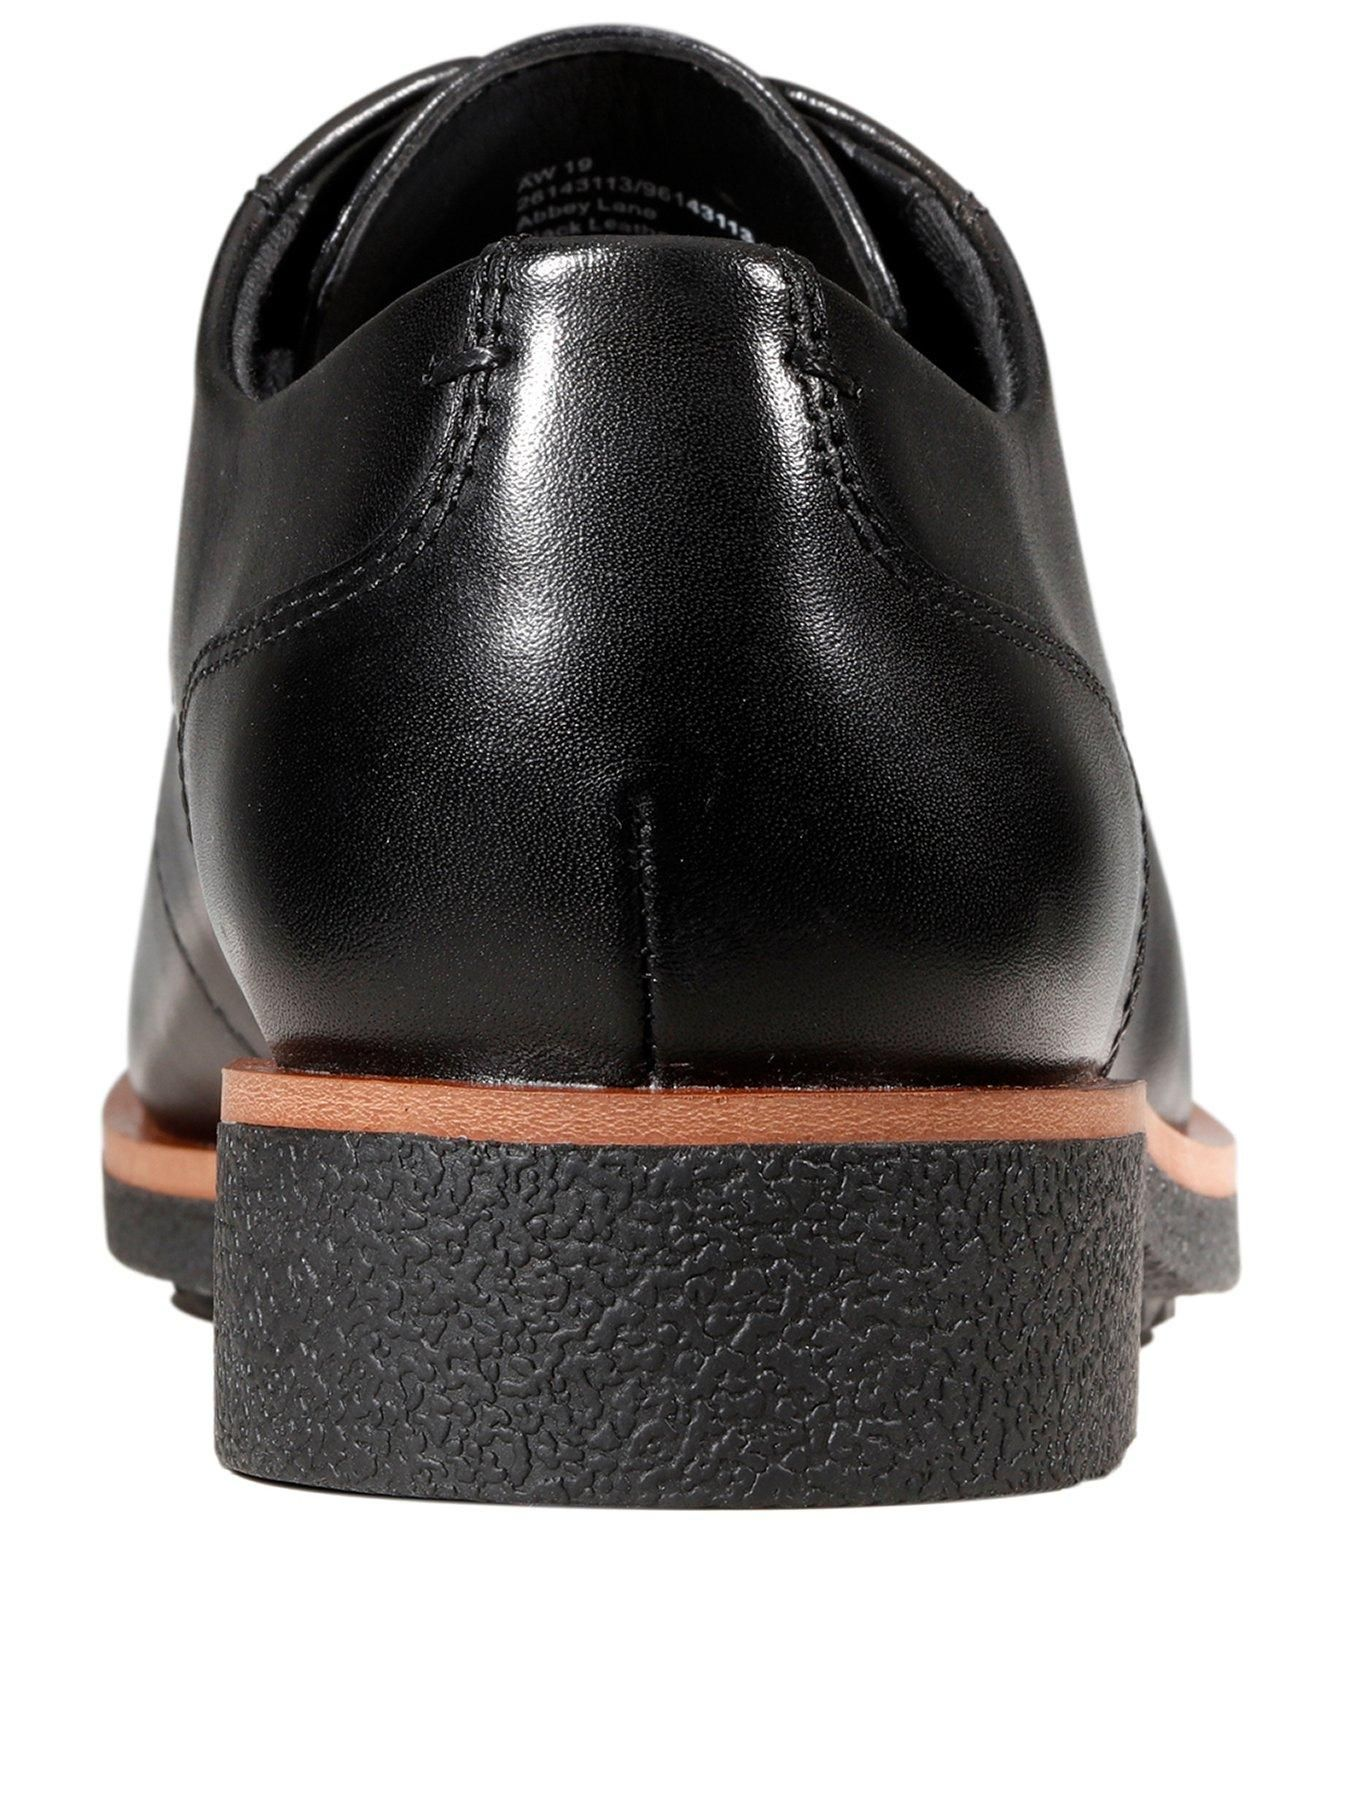 Clarks Griffin Lane Brogues, Black Leather, Size 9, Women